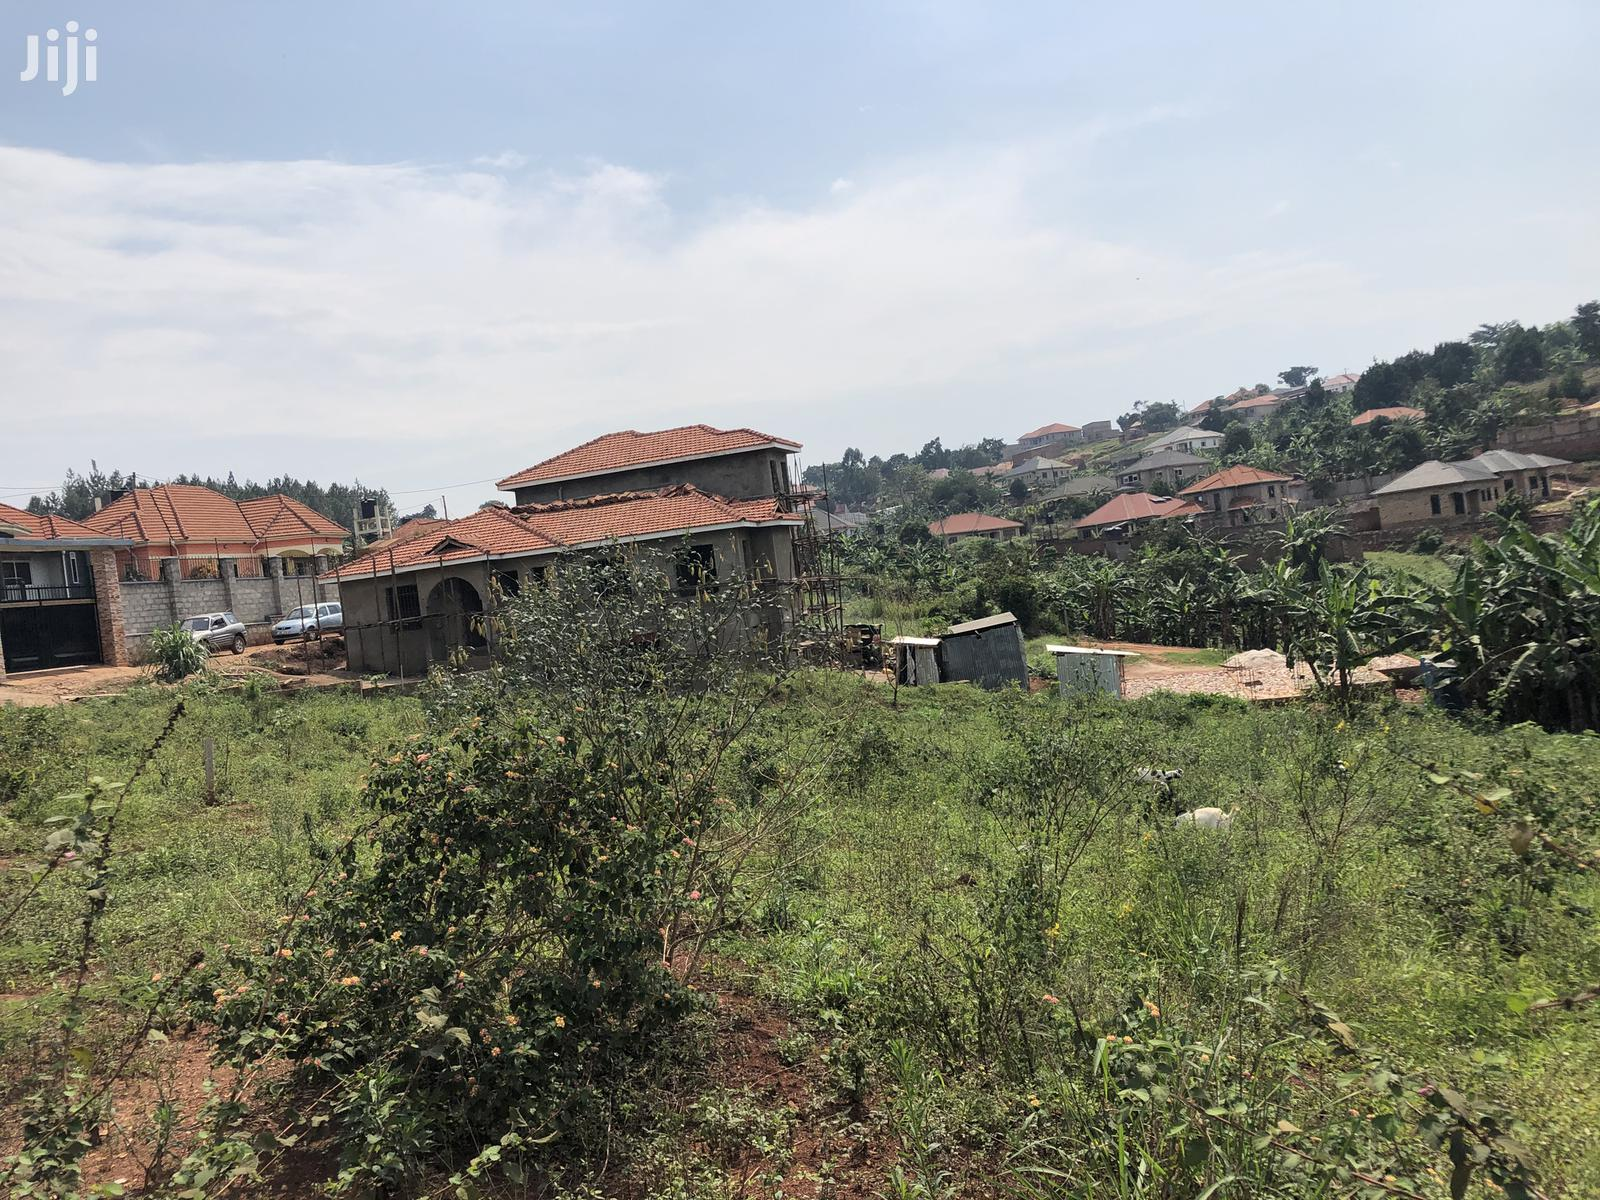 Kira Nakwero Perfect Neighborhood Plot on Sell | Land & Plots For Sale for sale in Kampala, Central Region, Uganda